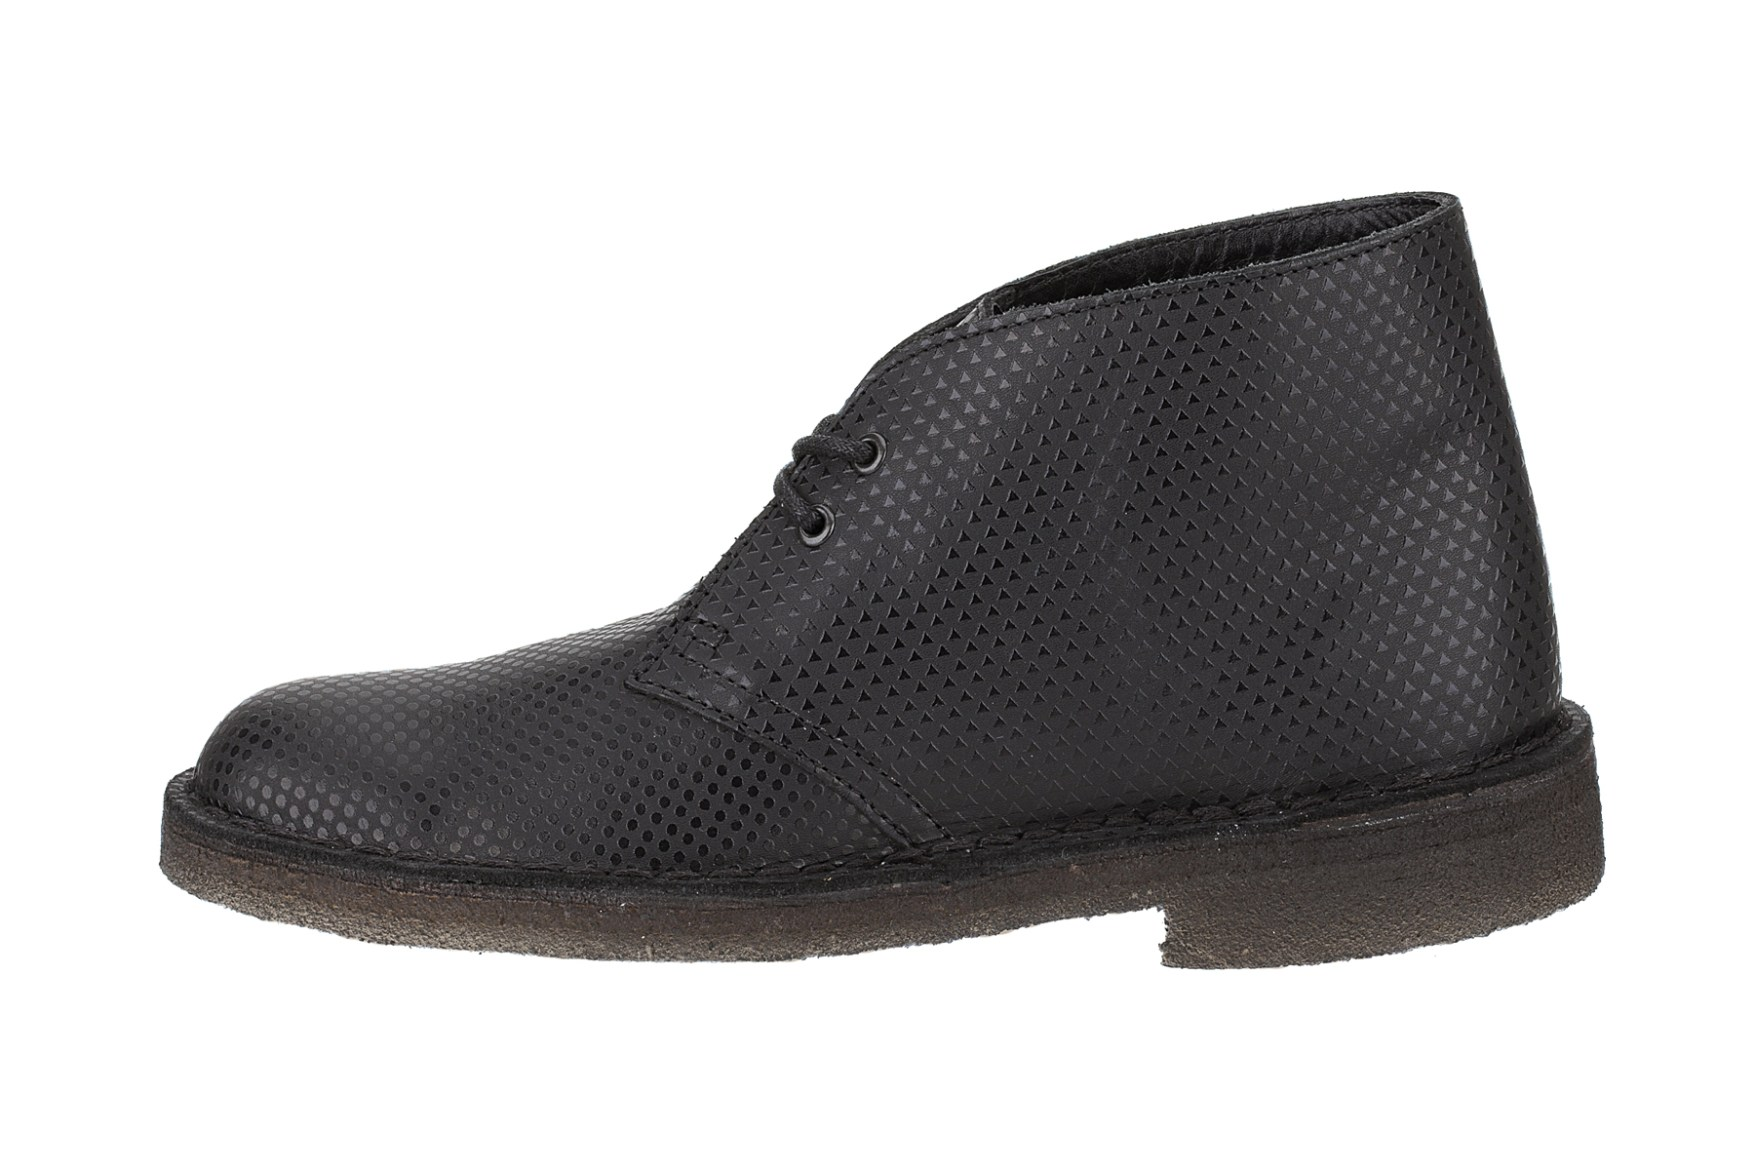 PATTERNITY x Clarks 2014 Fall Desert Boot Collection